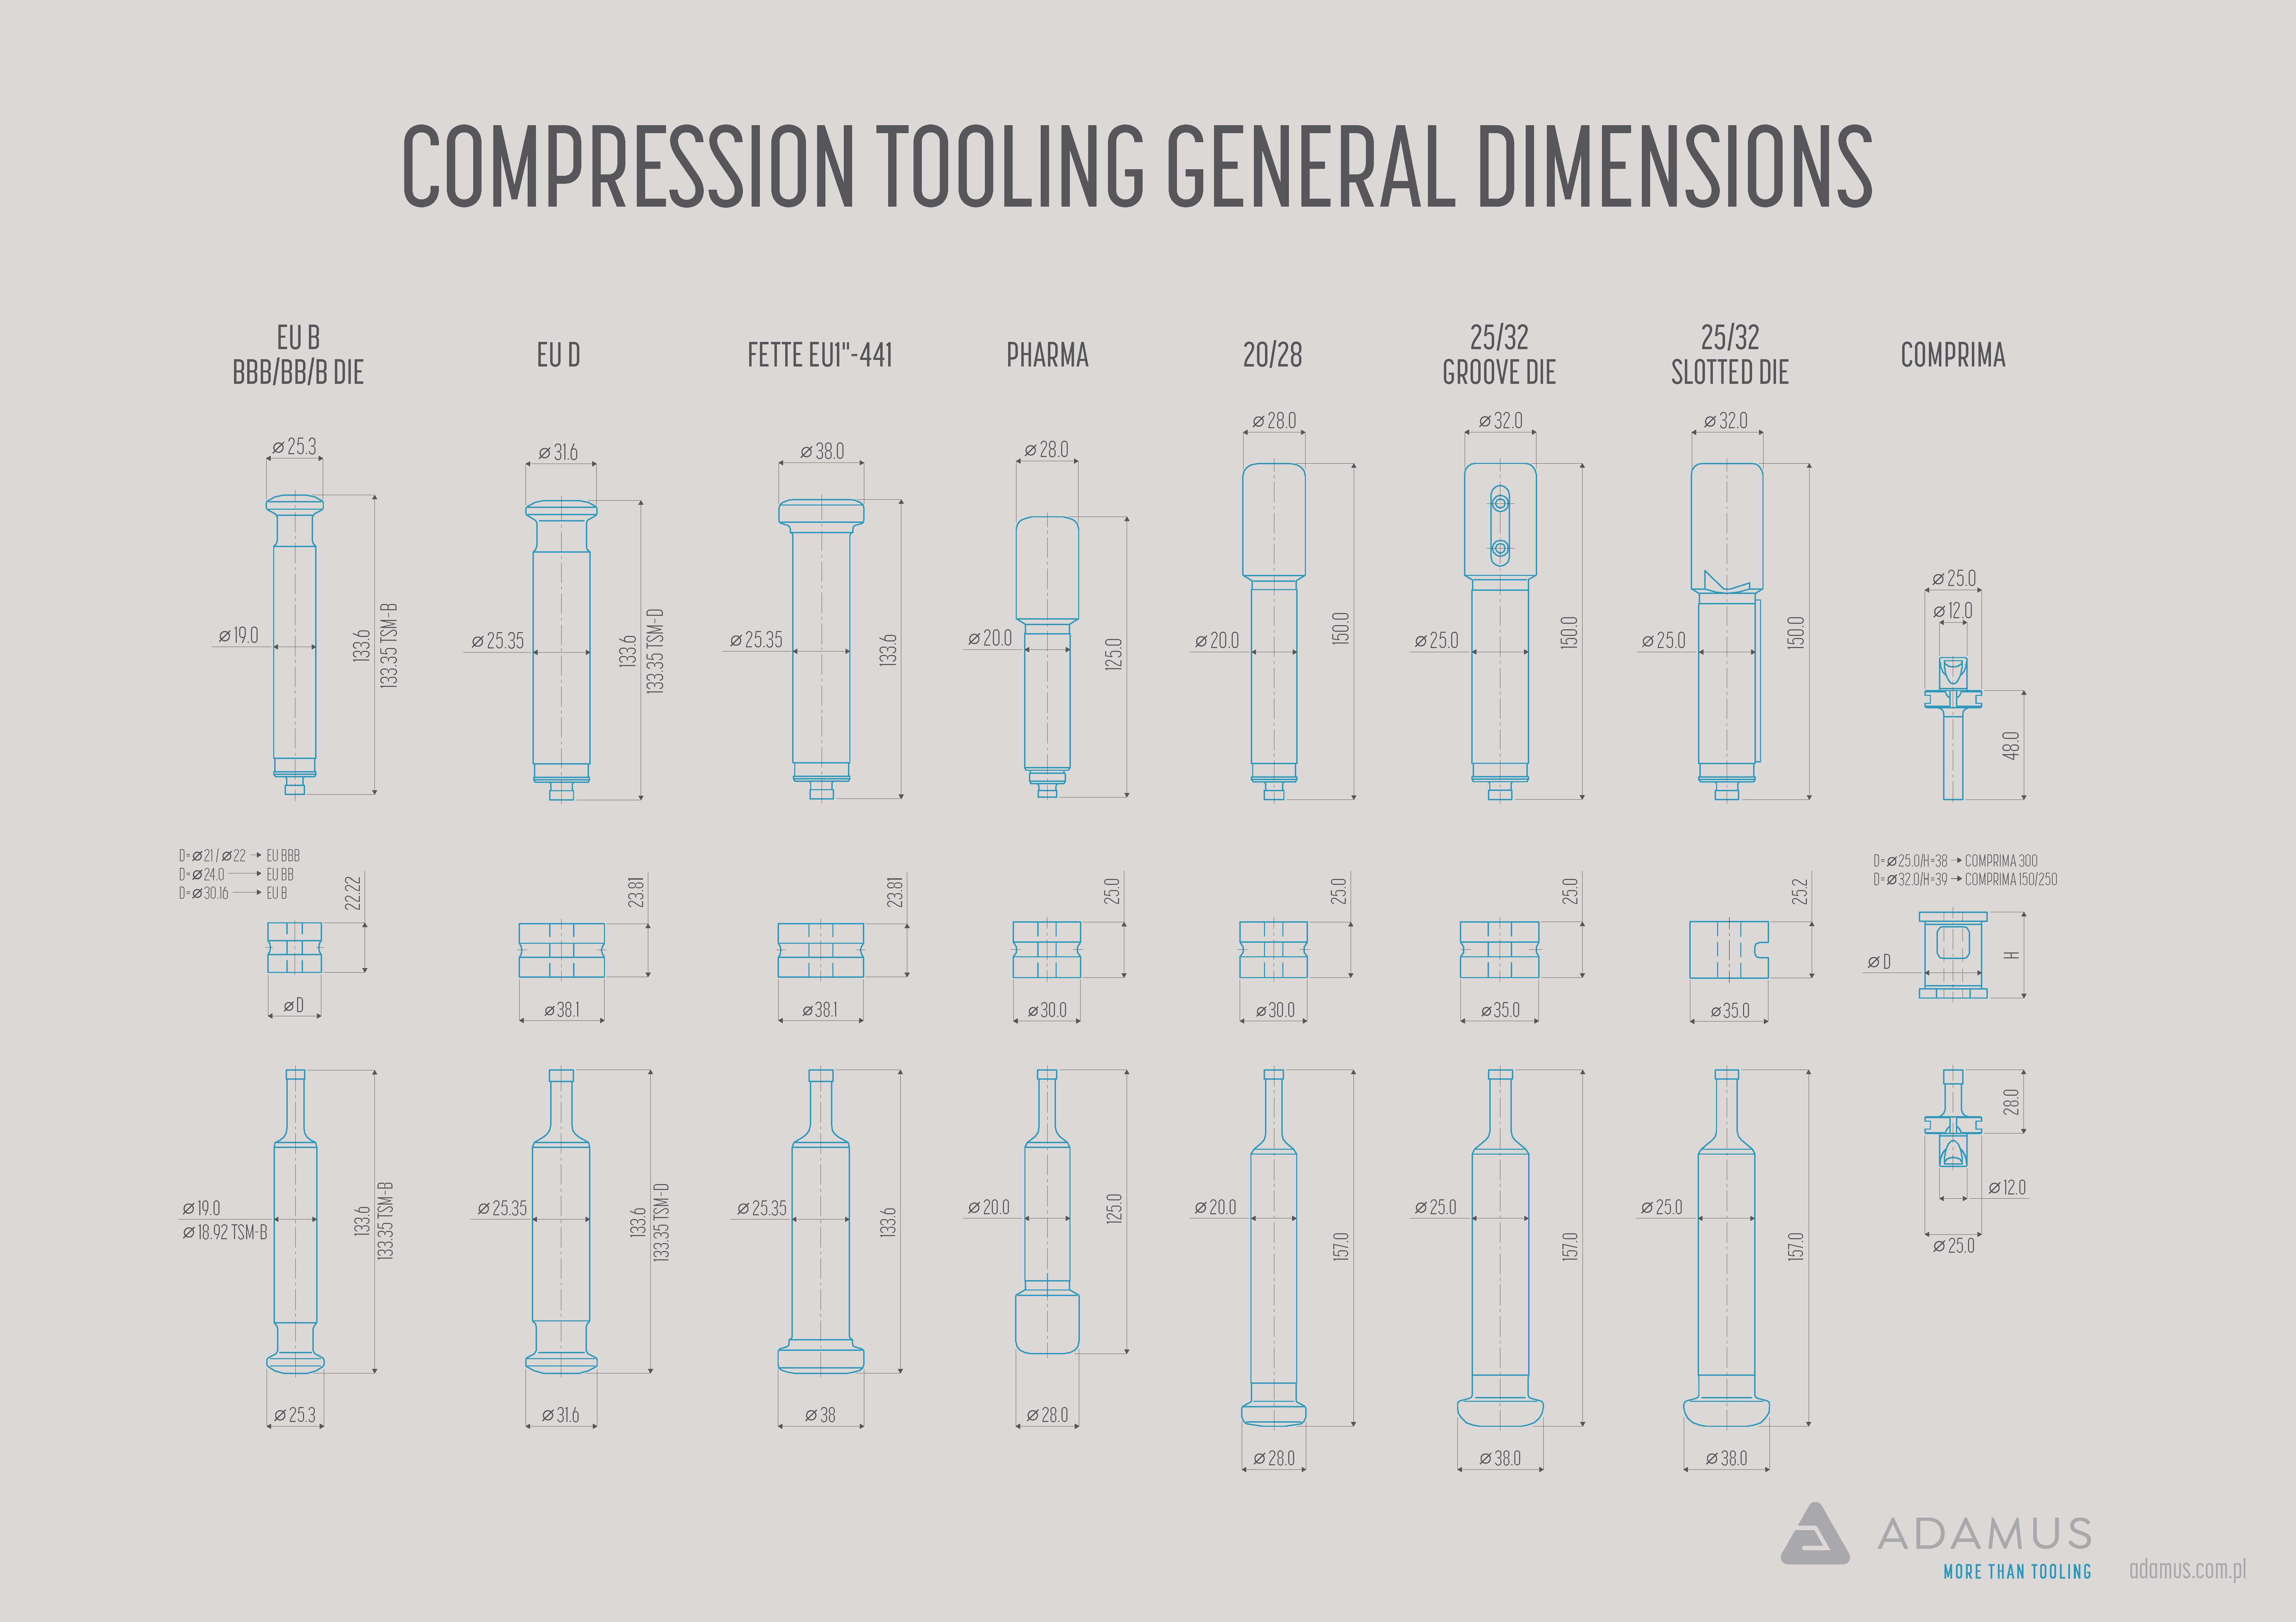 AP COMPRESSION TOOLING GENERAL DIMENSIONS 23.03.2020